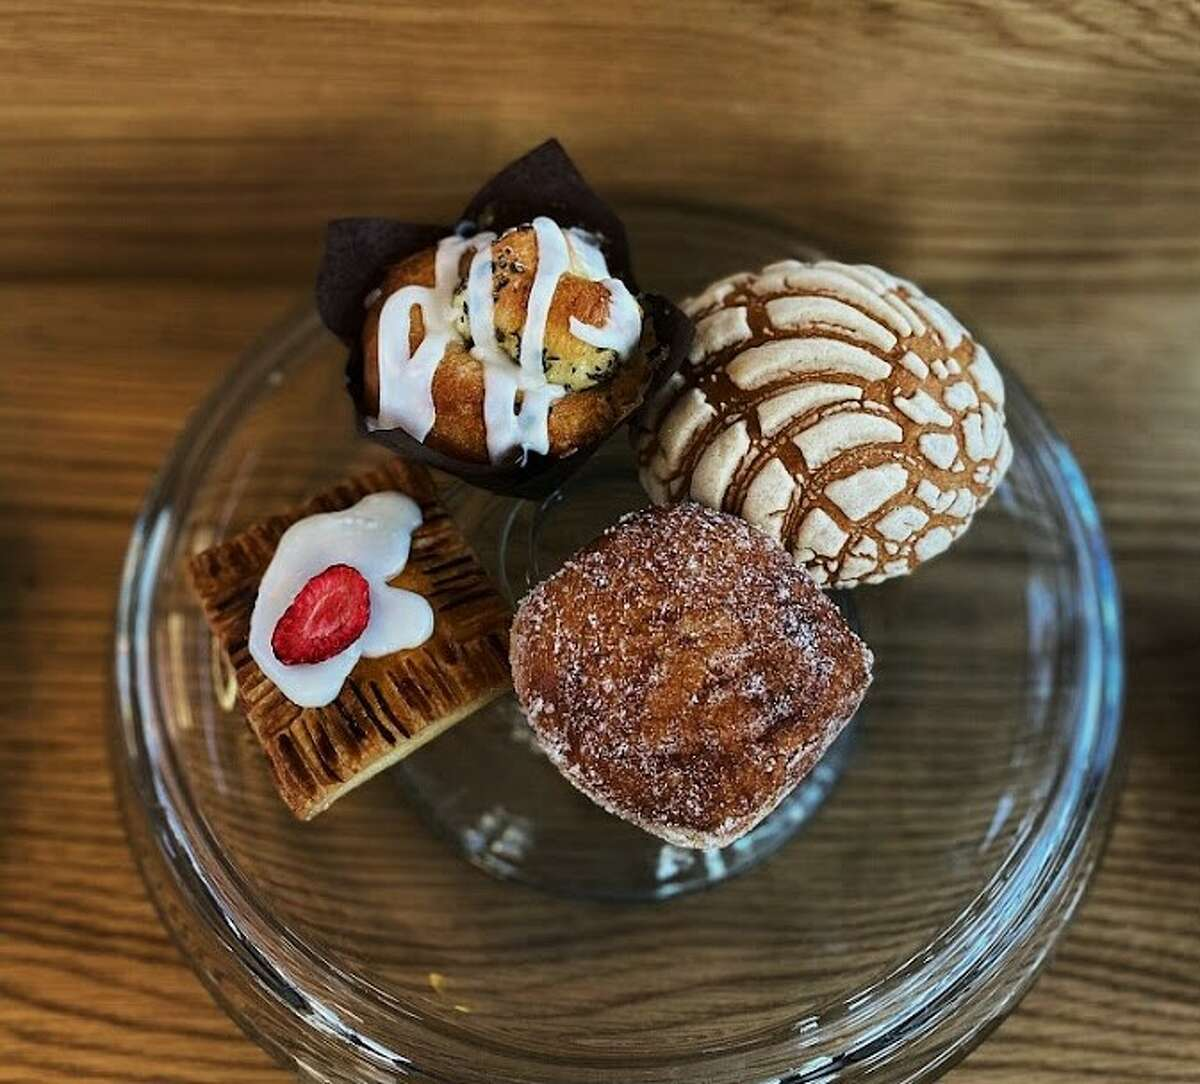 Giant Leap Coffee offers a wide variety of pastries.